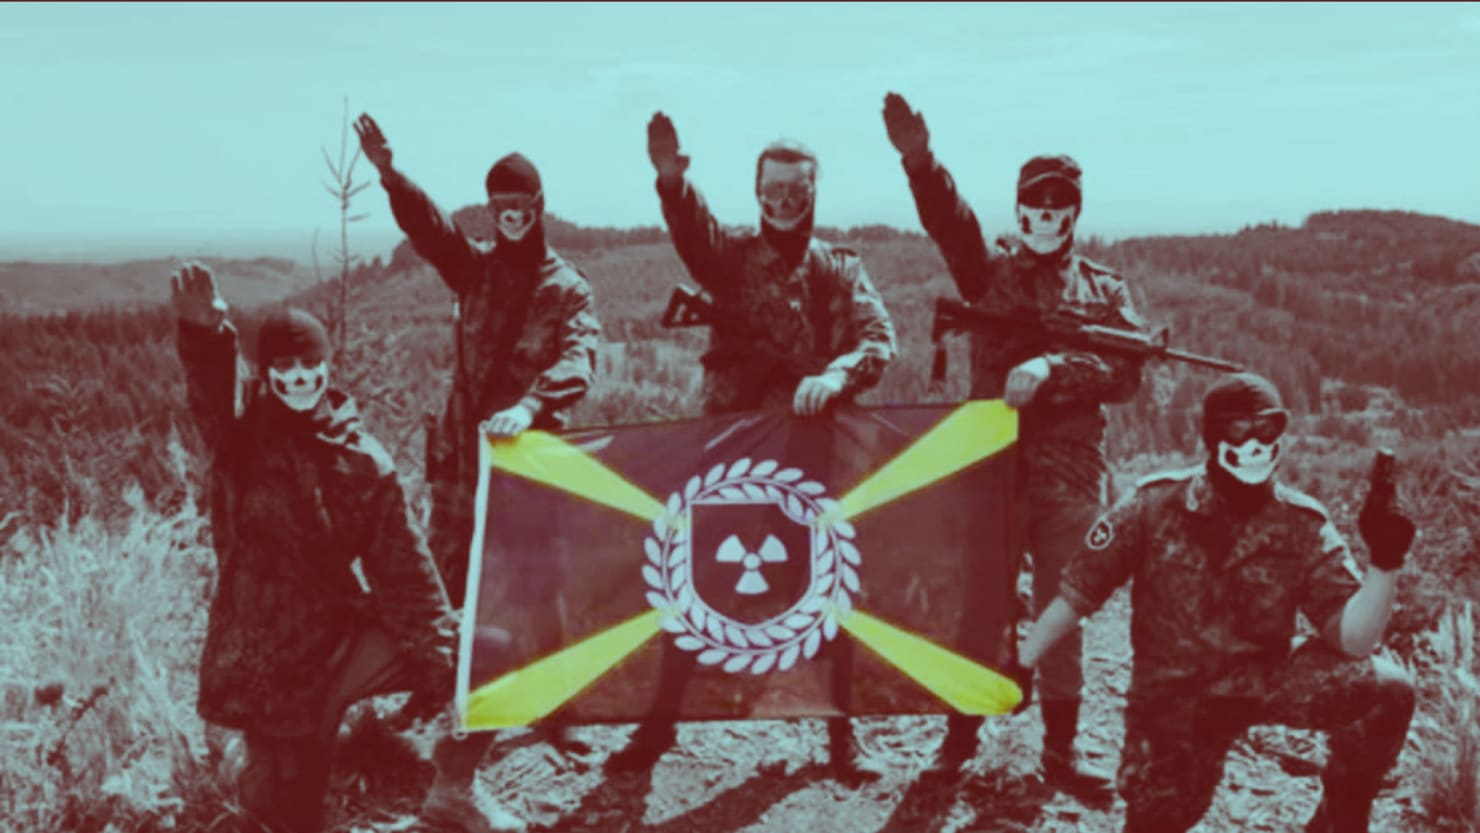 FBI Crackdown on Atomwaffen Division Heats Up With New Arrests